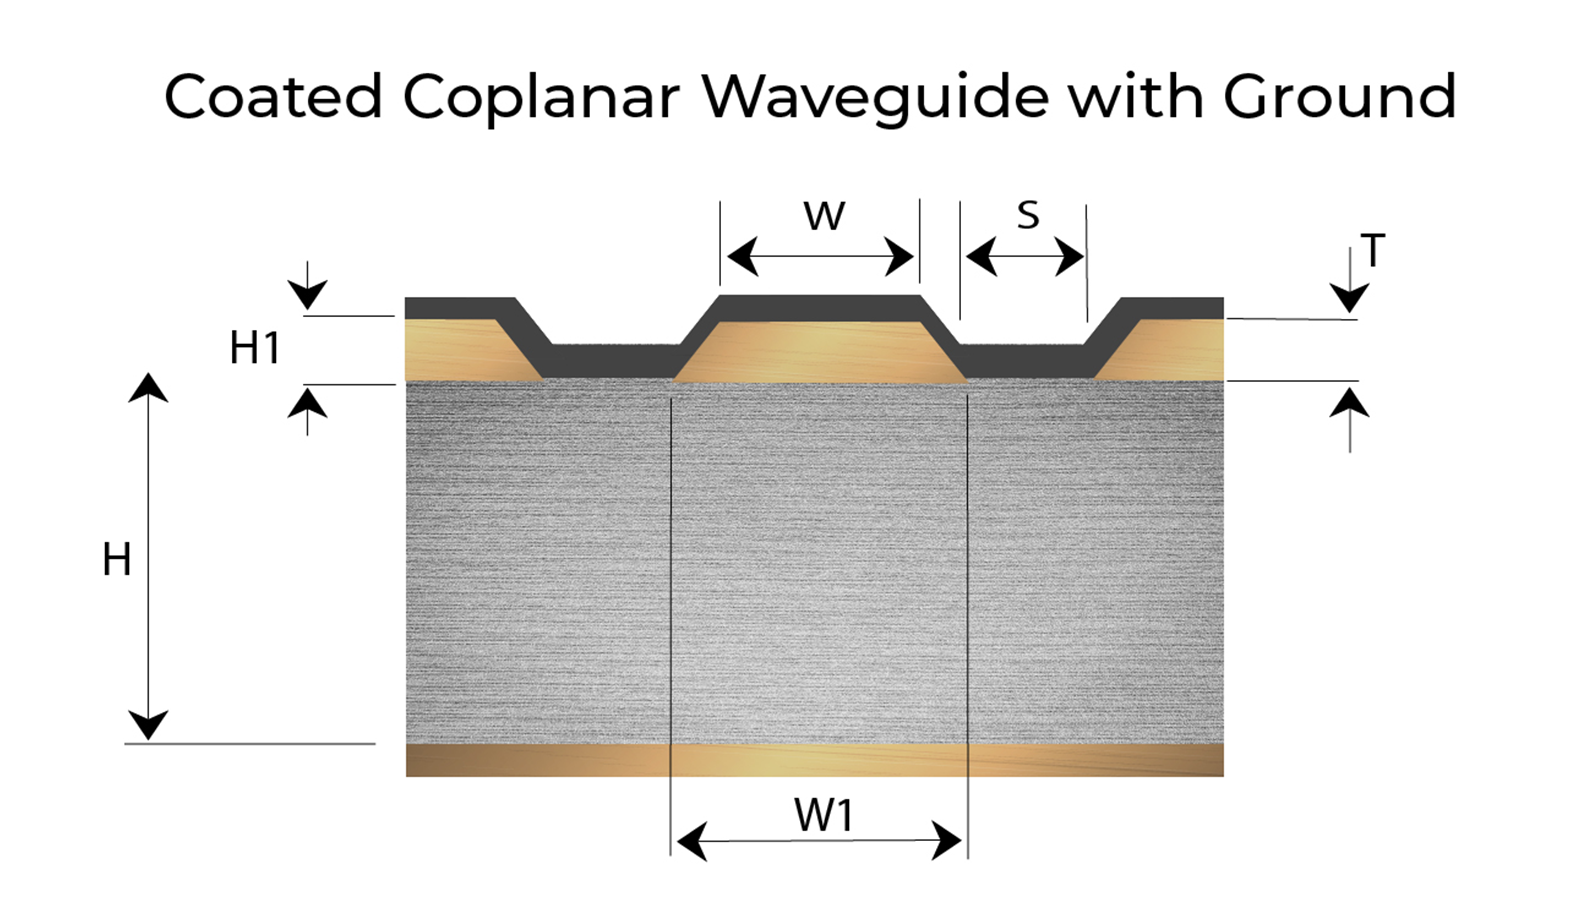 Coated Coplanar Waveguide with Ground